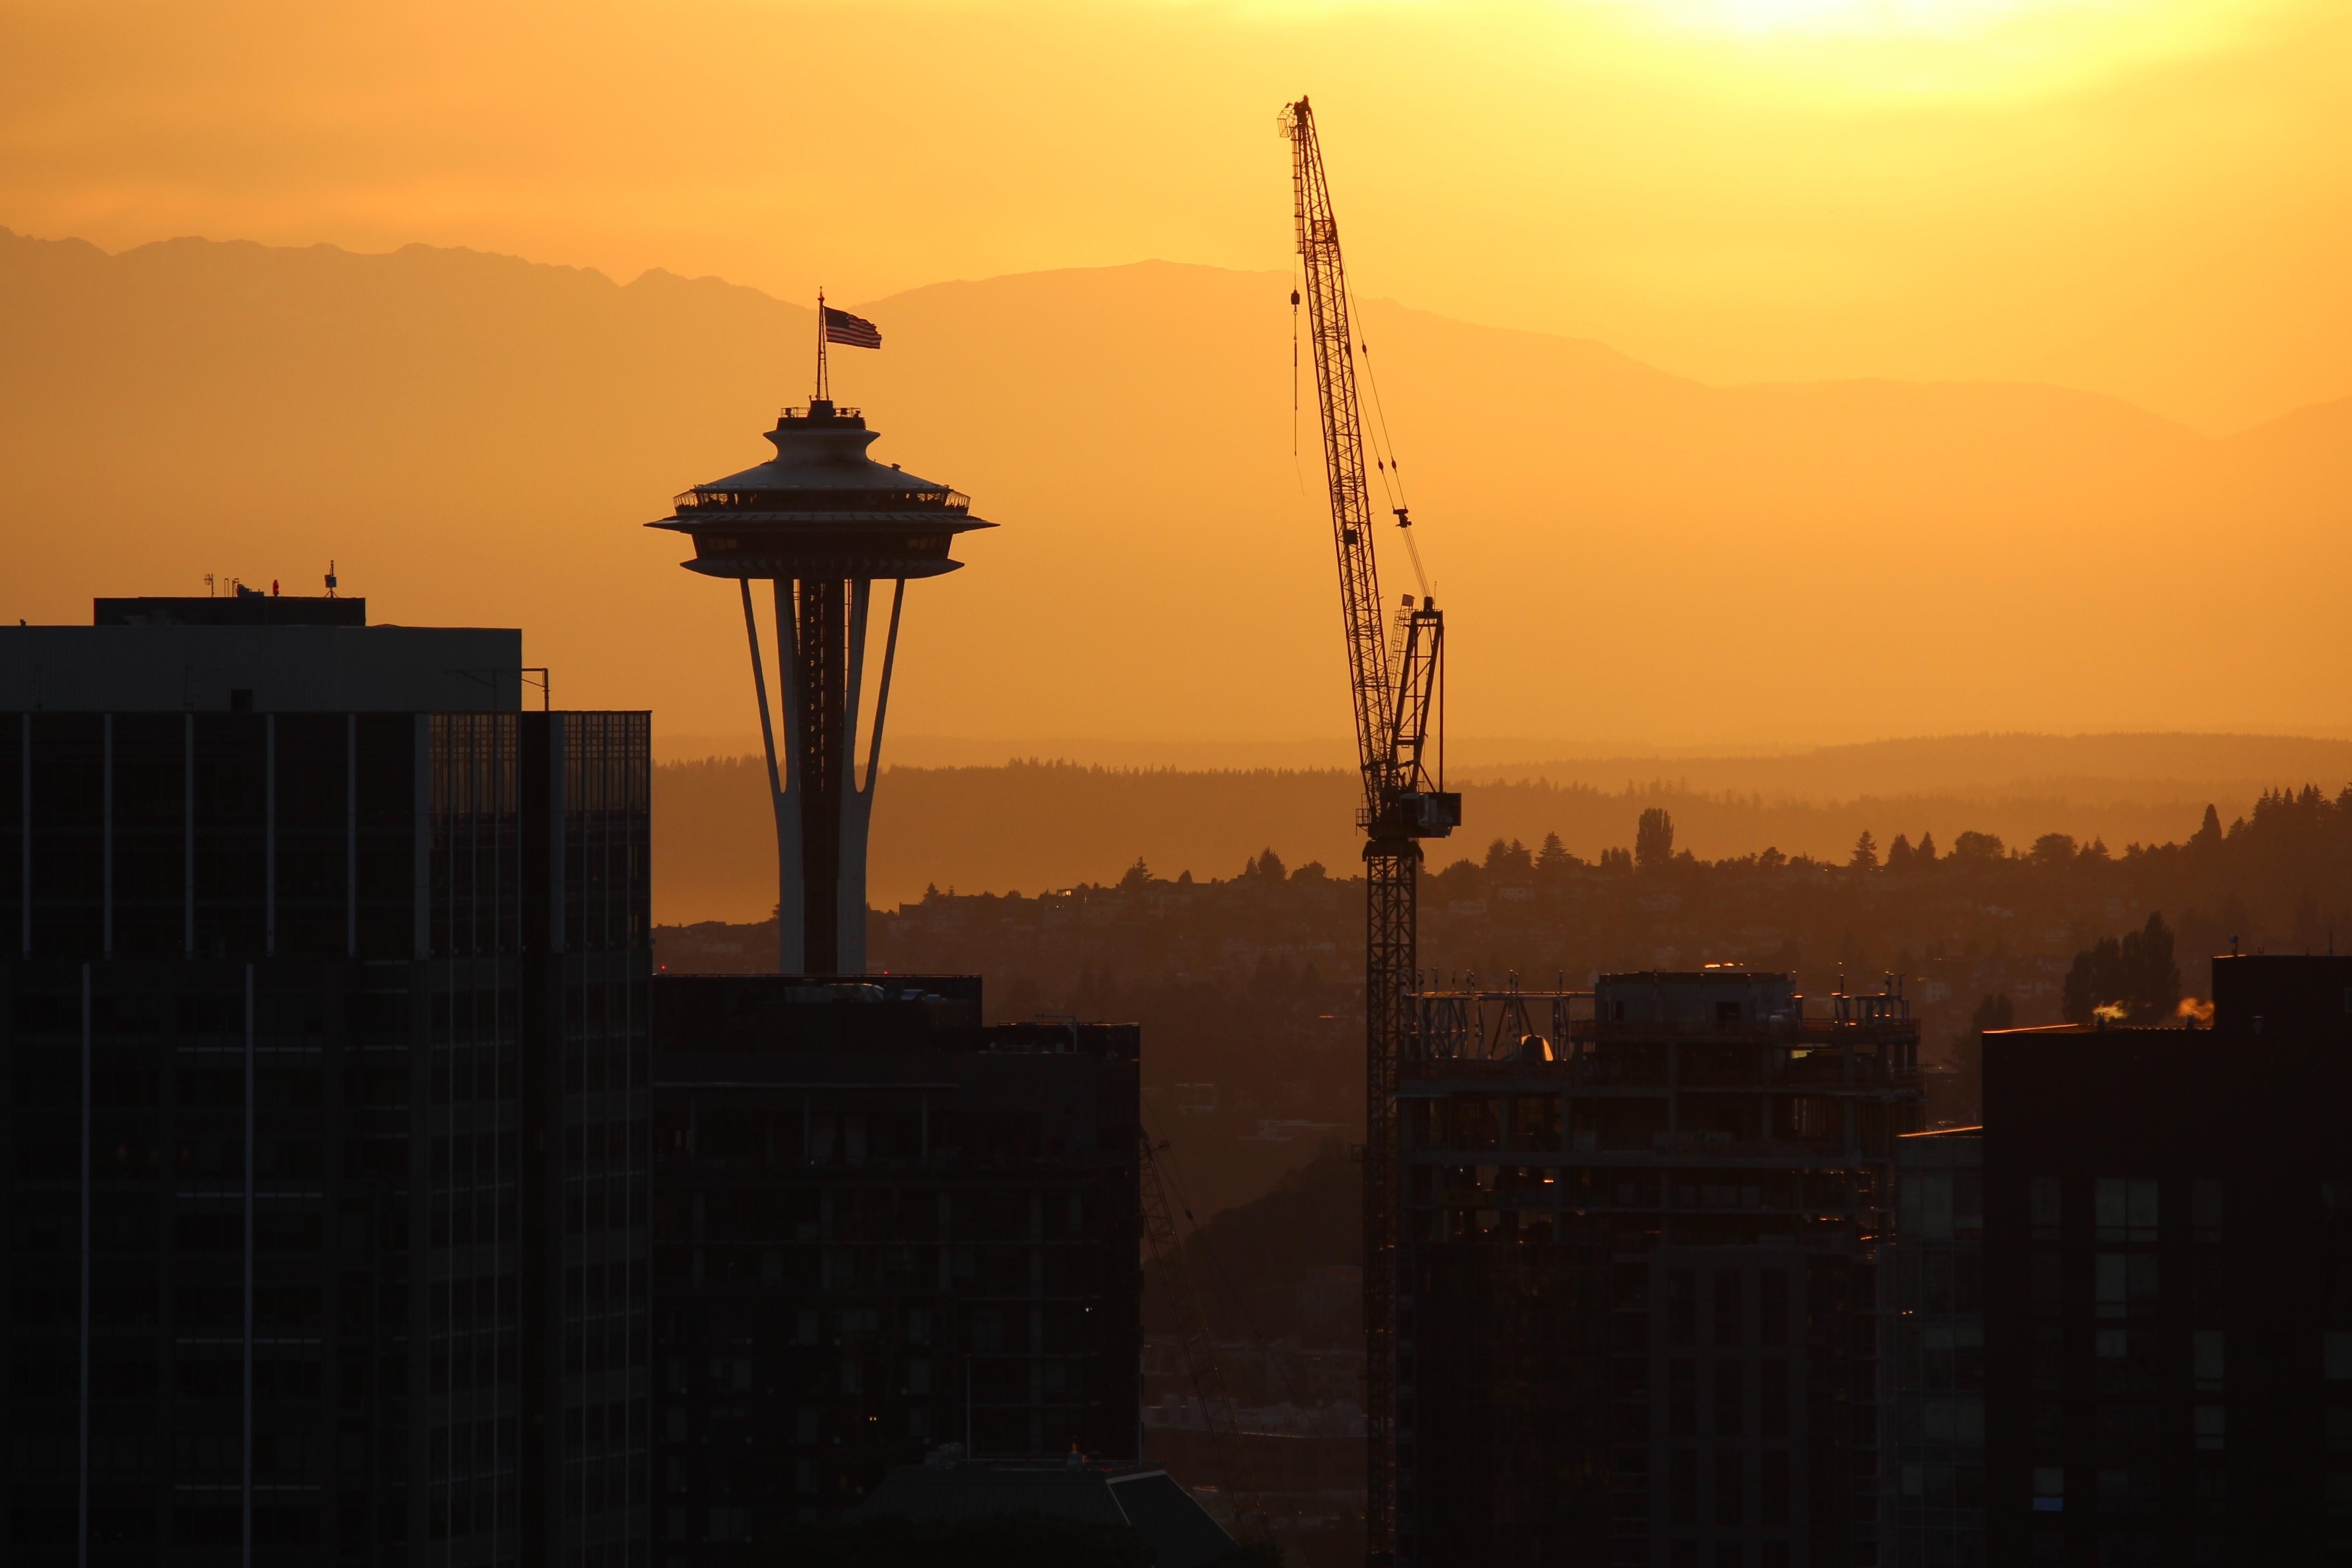 Space Needle and crane at sunset [OC]